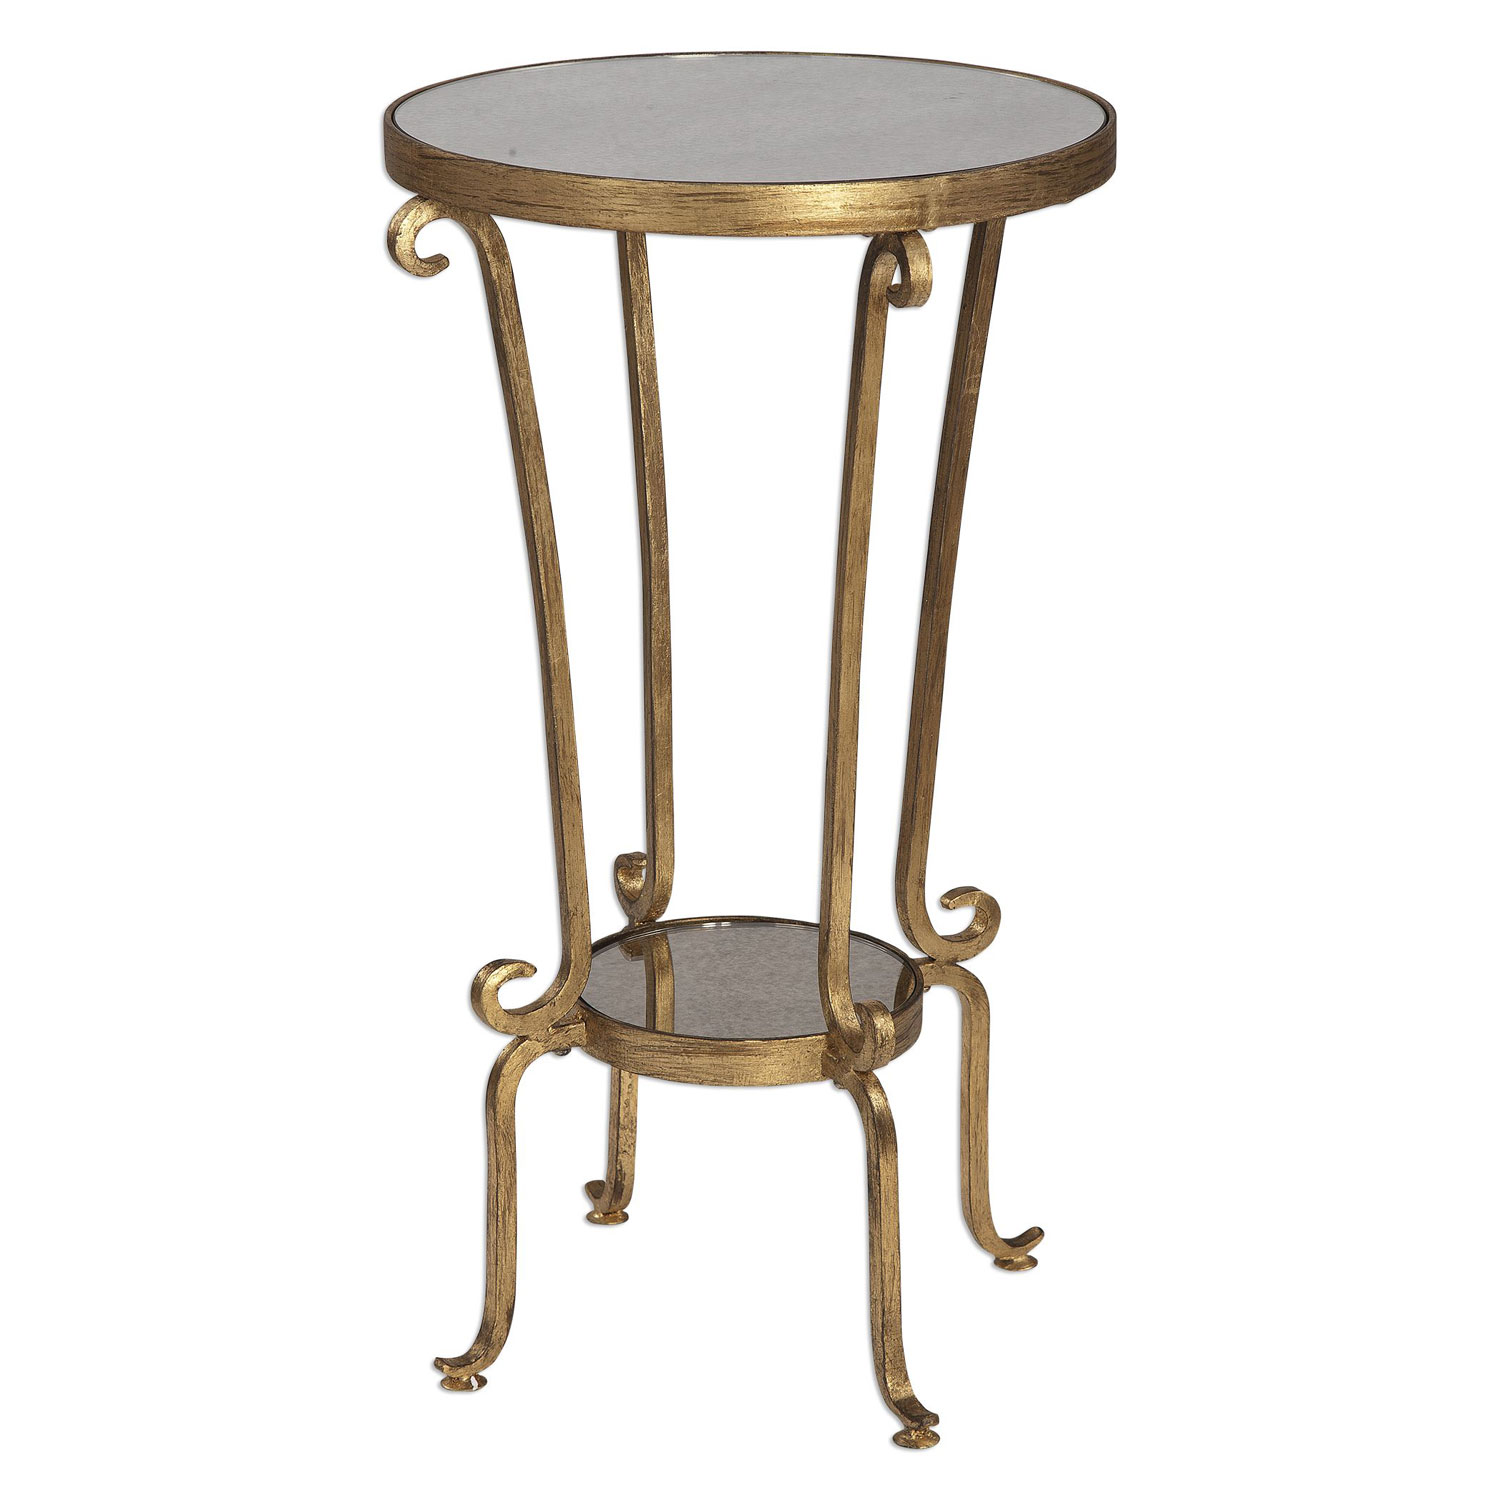 uttermost vevina antique gold accent table bellacor hover zoom elm flooring target mirrored side with drawer dining room chandeliers coffee chairs under cordless led lights